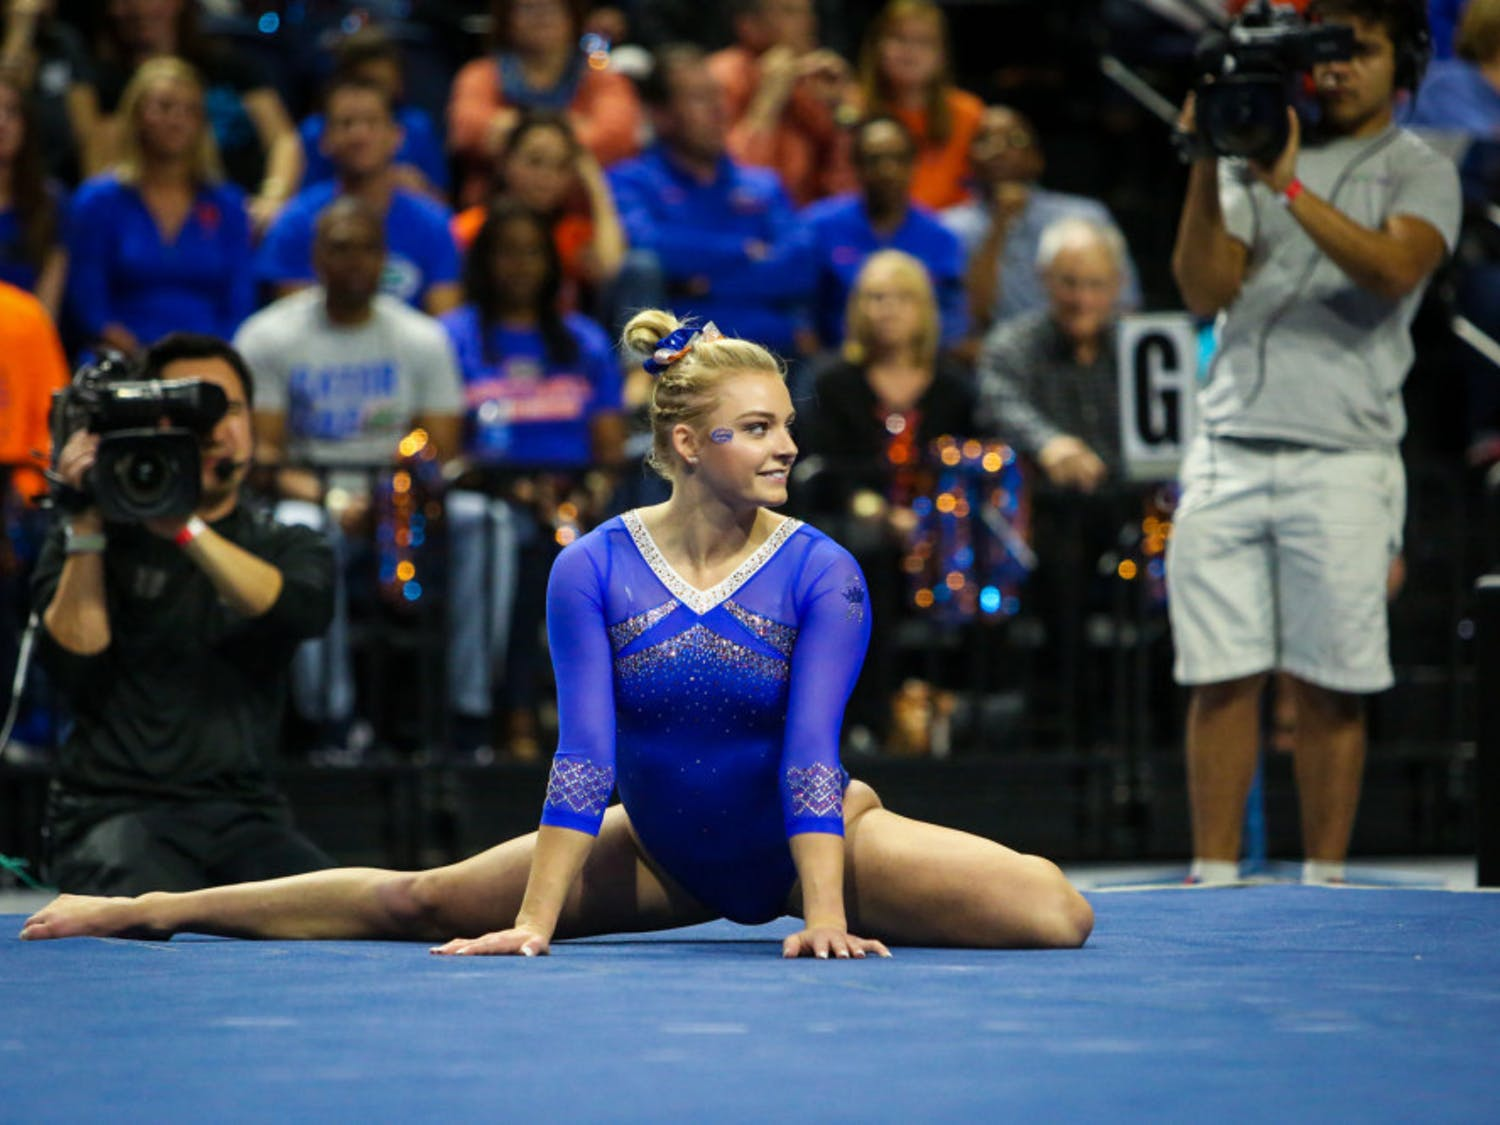 Freshman Alyssa Baumann posted the high score in beam for the second time in her career with a 9.90.